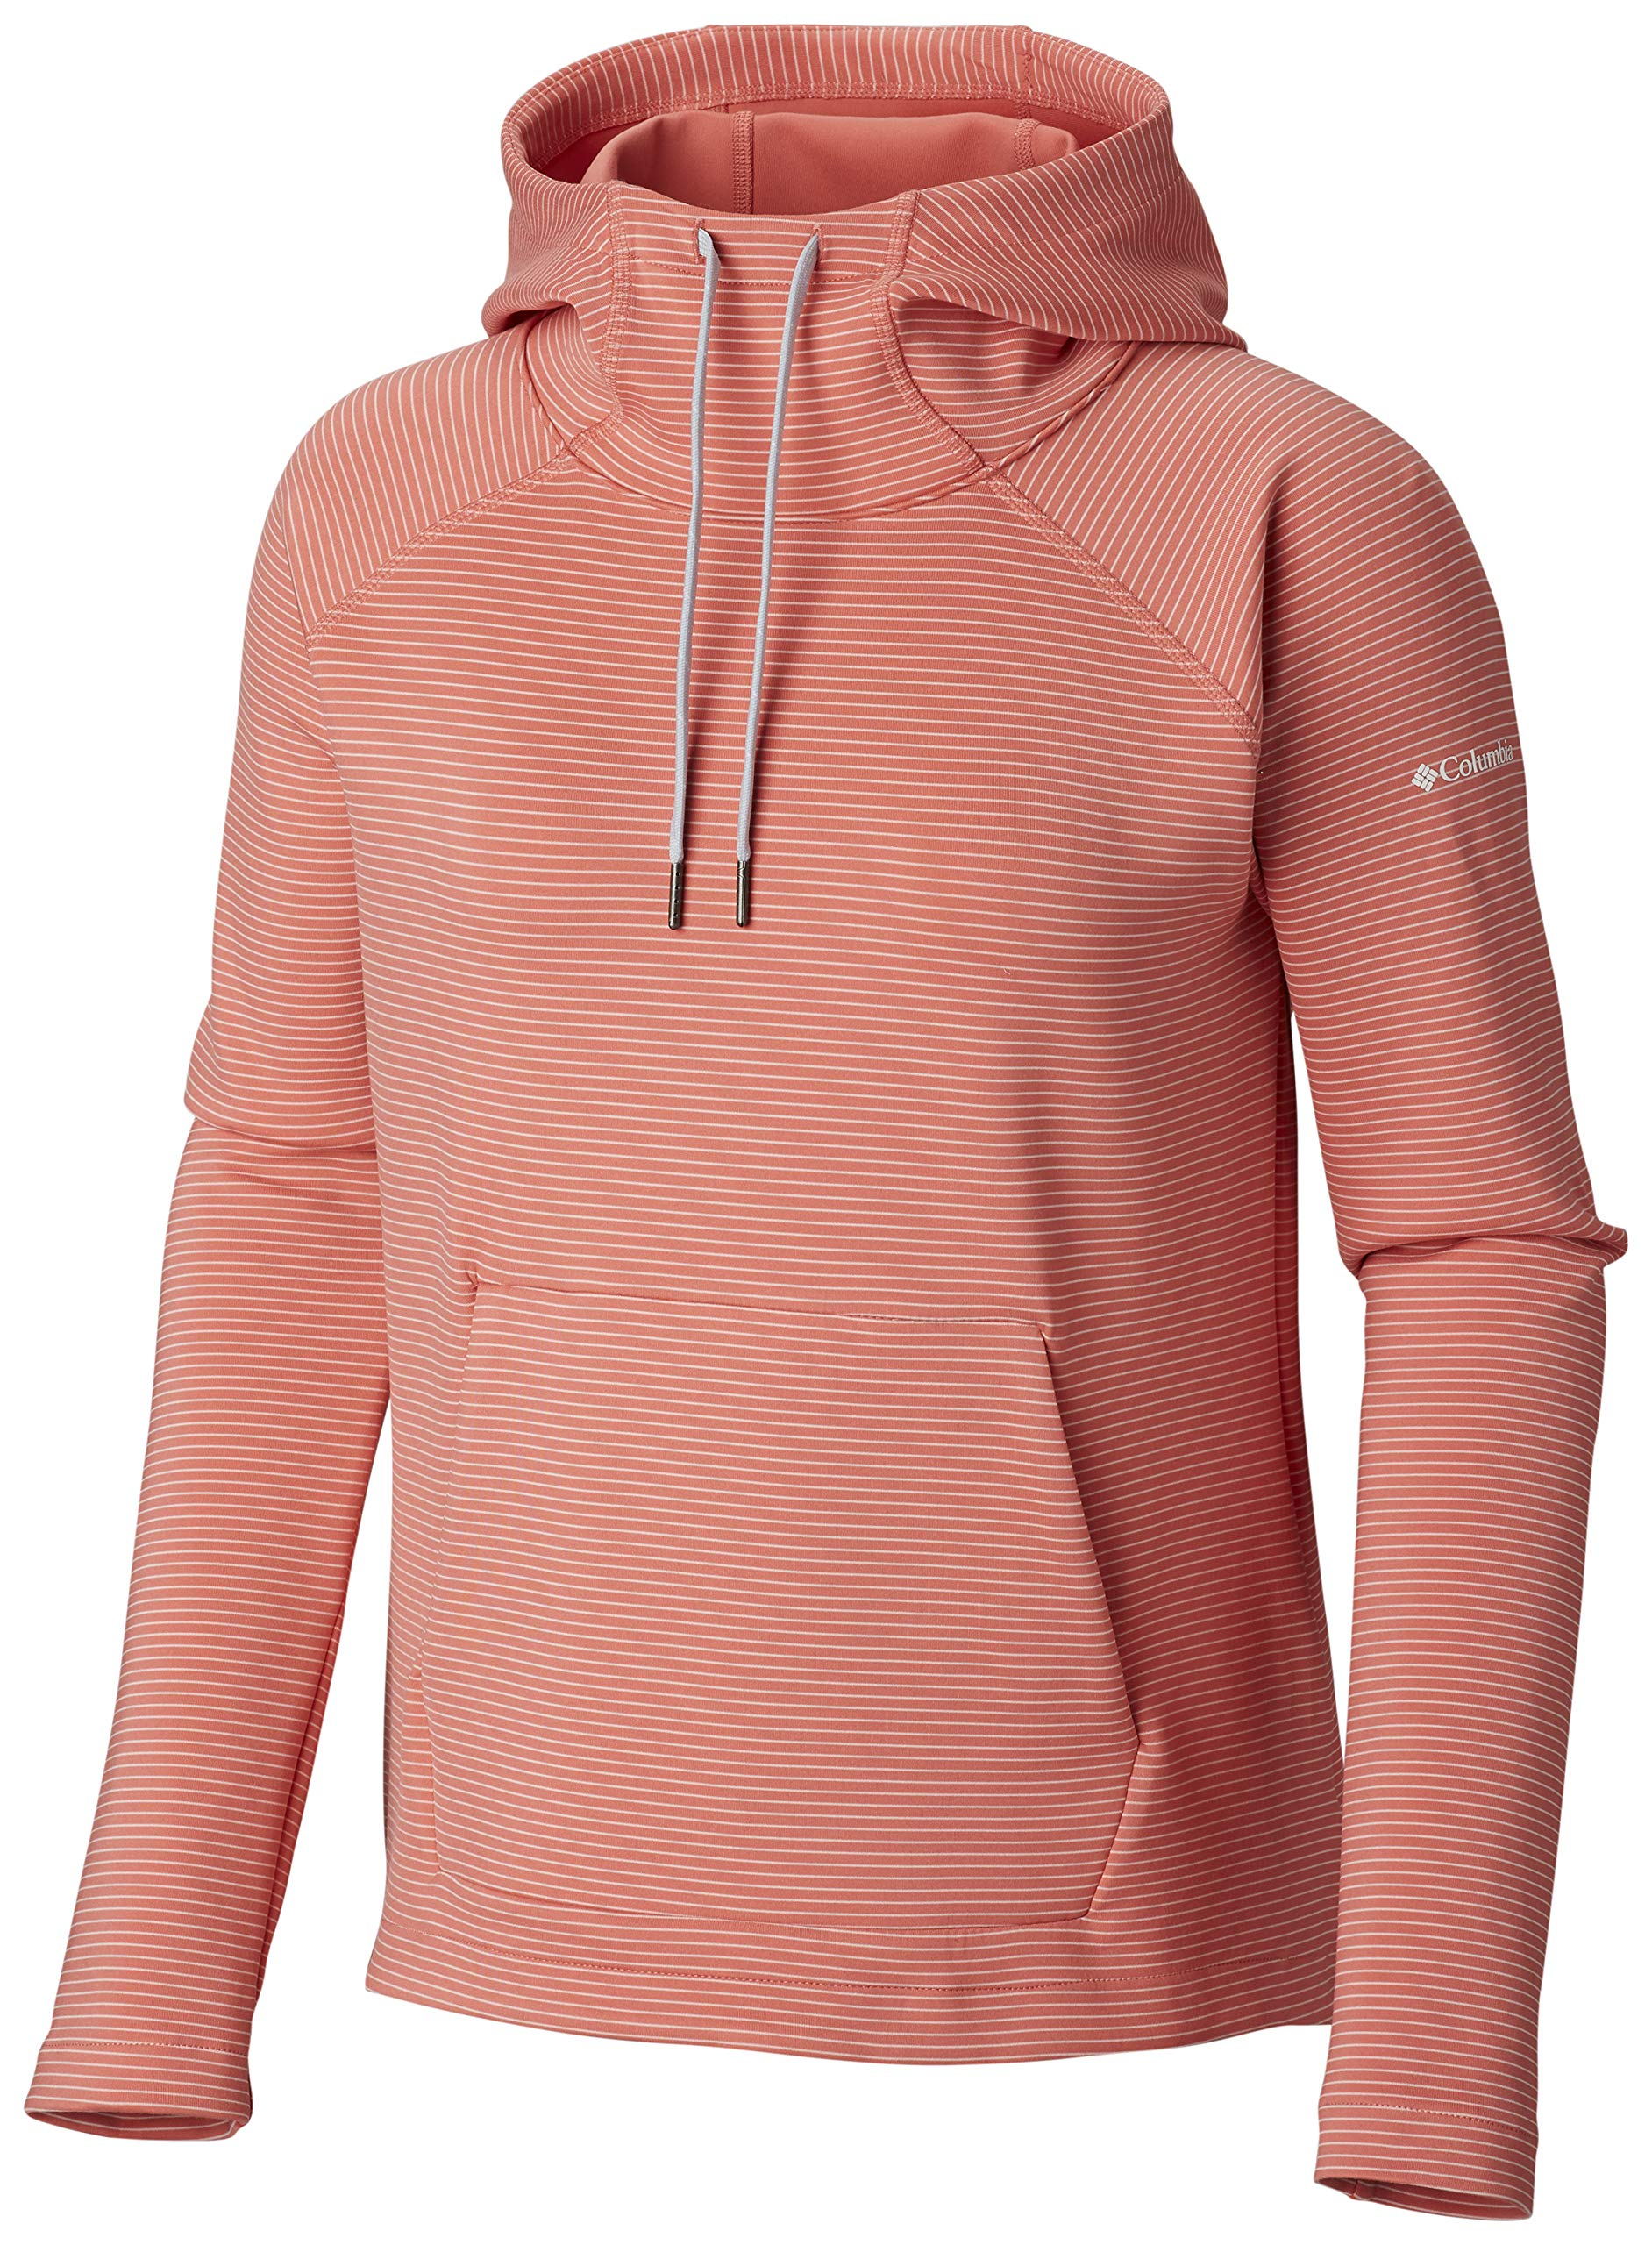 Columbia Women's Bryce Canyon Hoodie,Coral Bloom Stripe,Large by Columbia